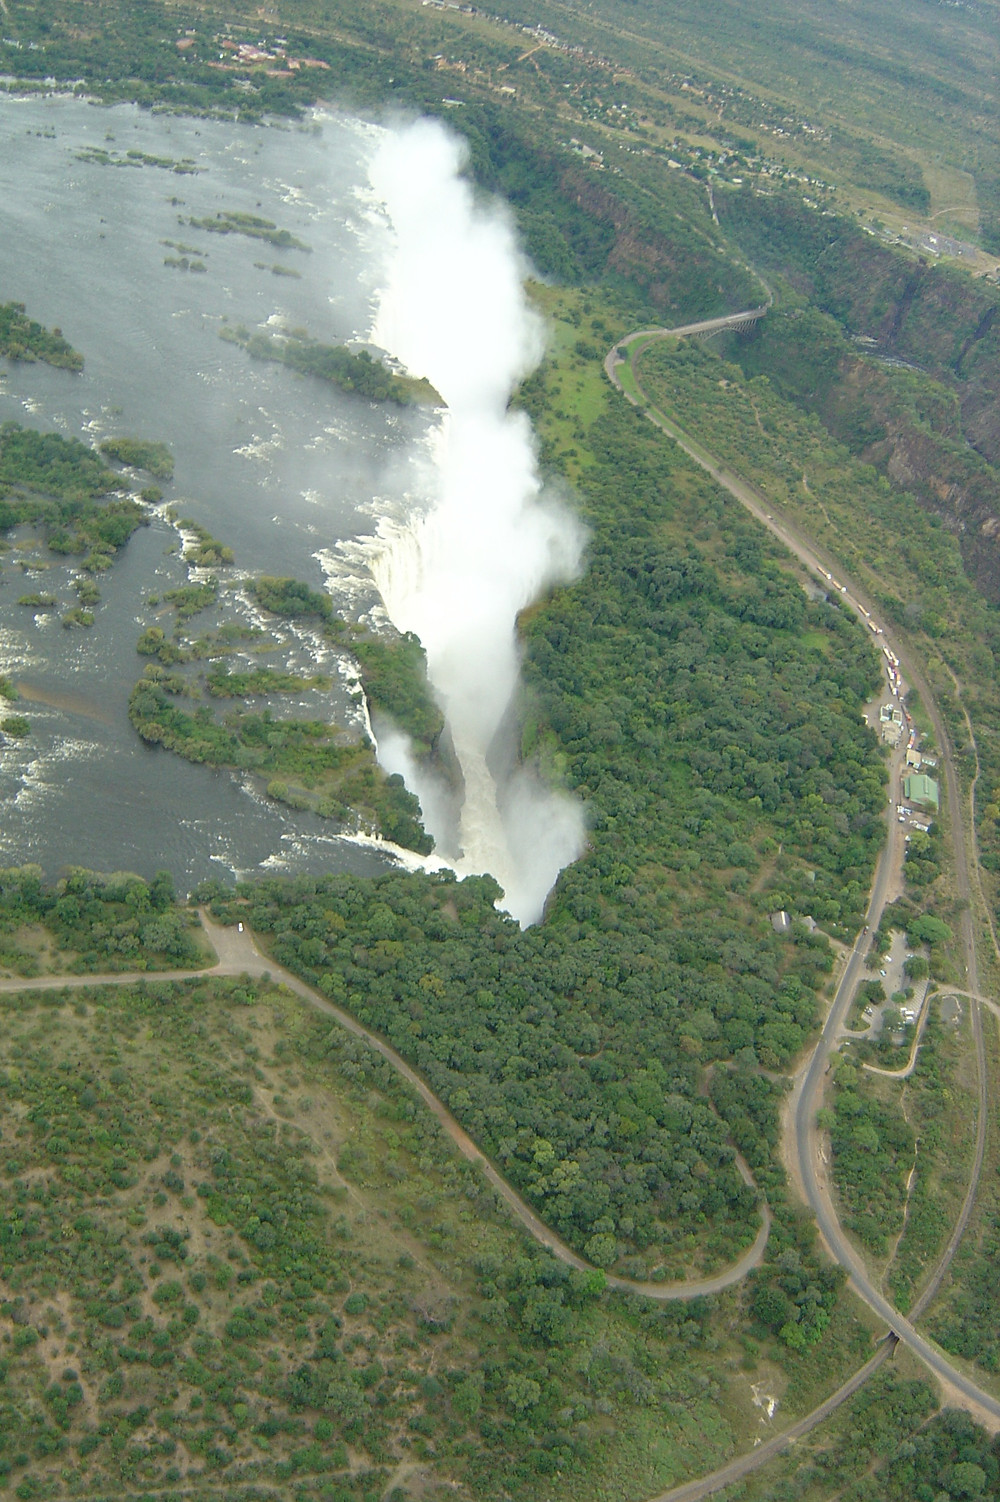 helicopter view of Victoria Falls, Zimbabwe